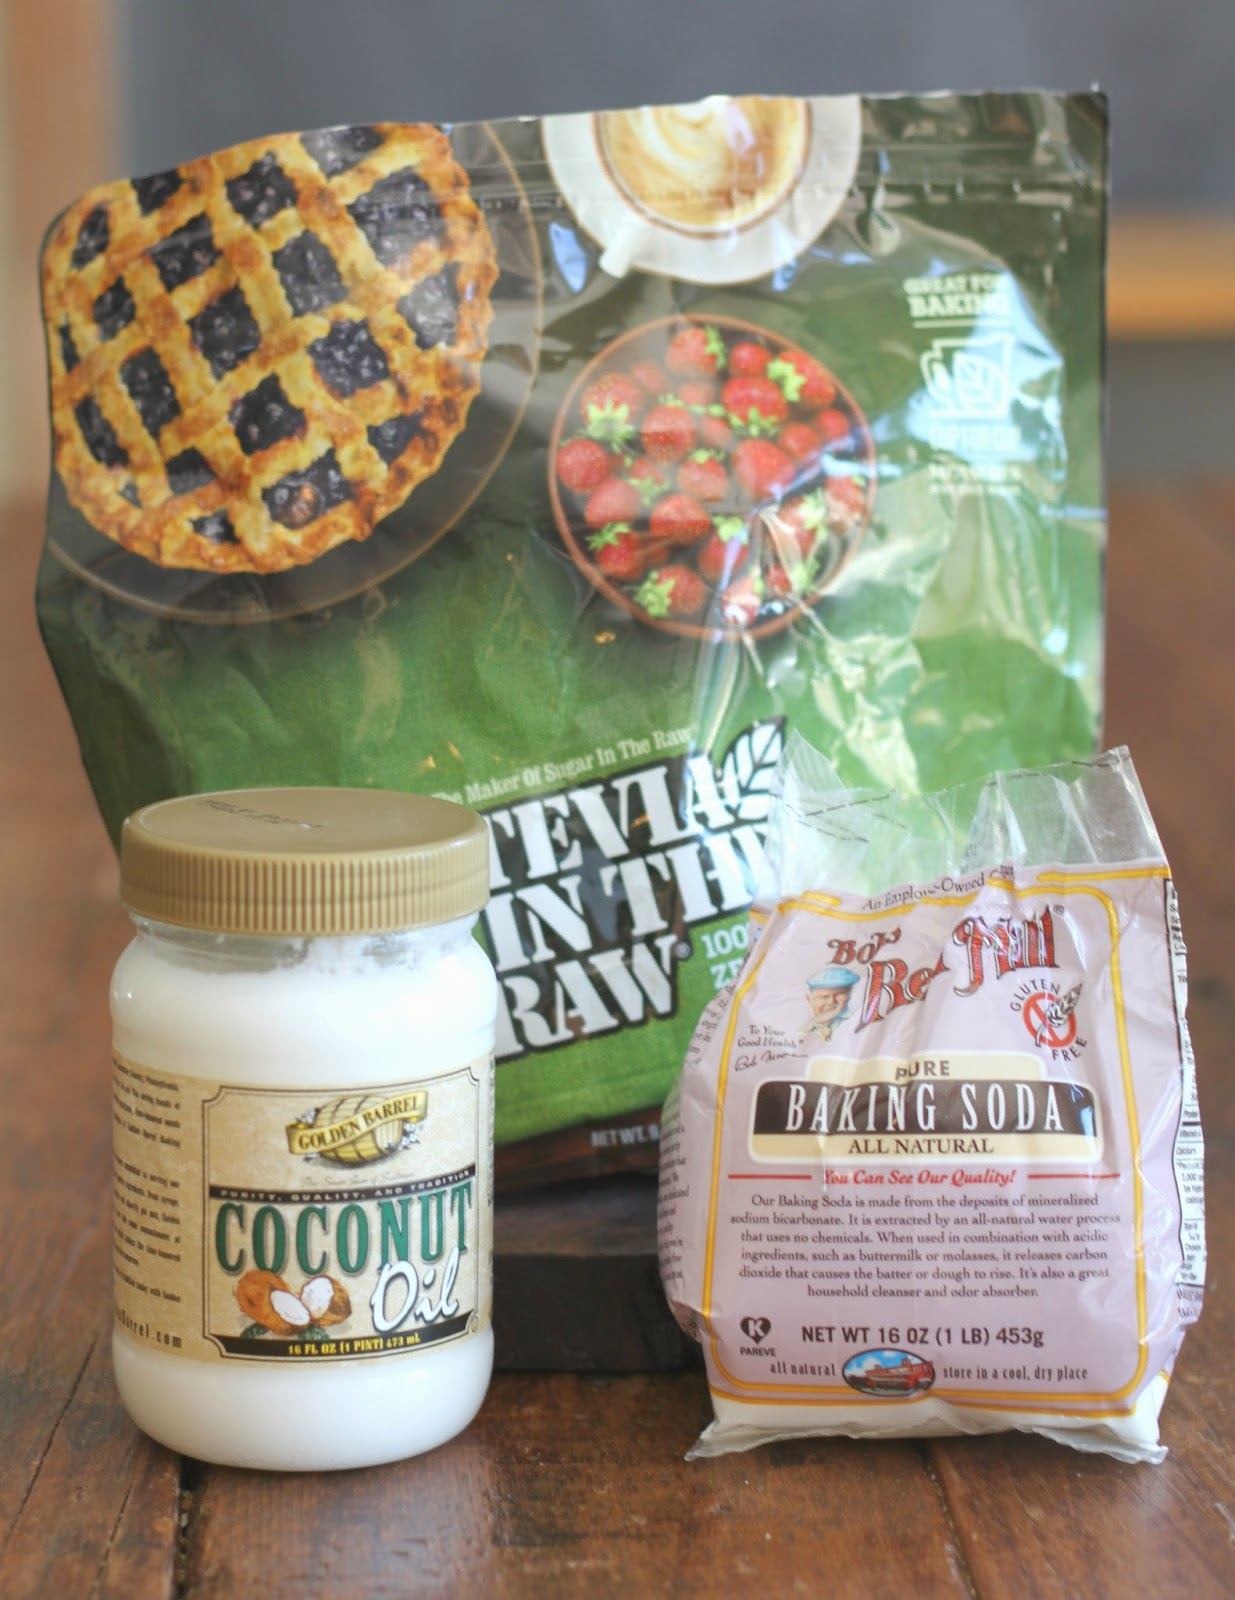 Ingredients for Homemade Toothpaste made with Golden Barrel Coconut Oil